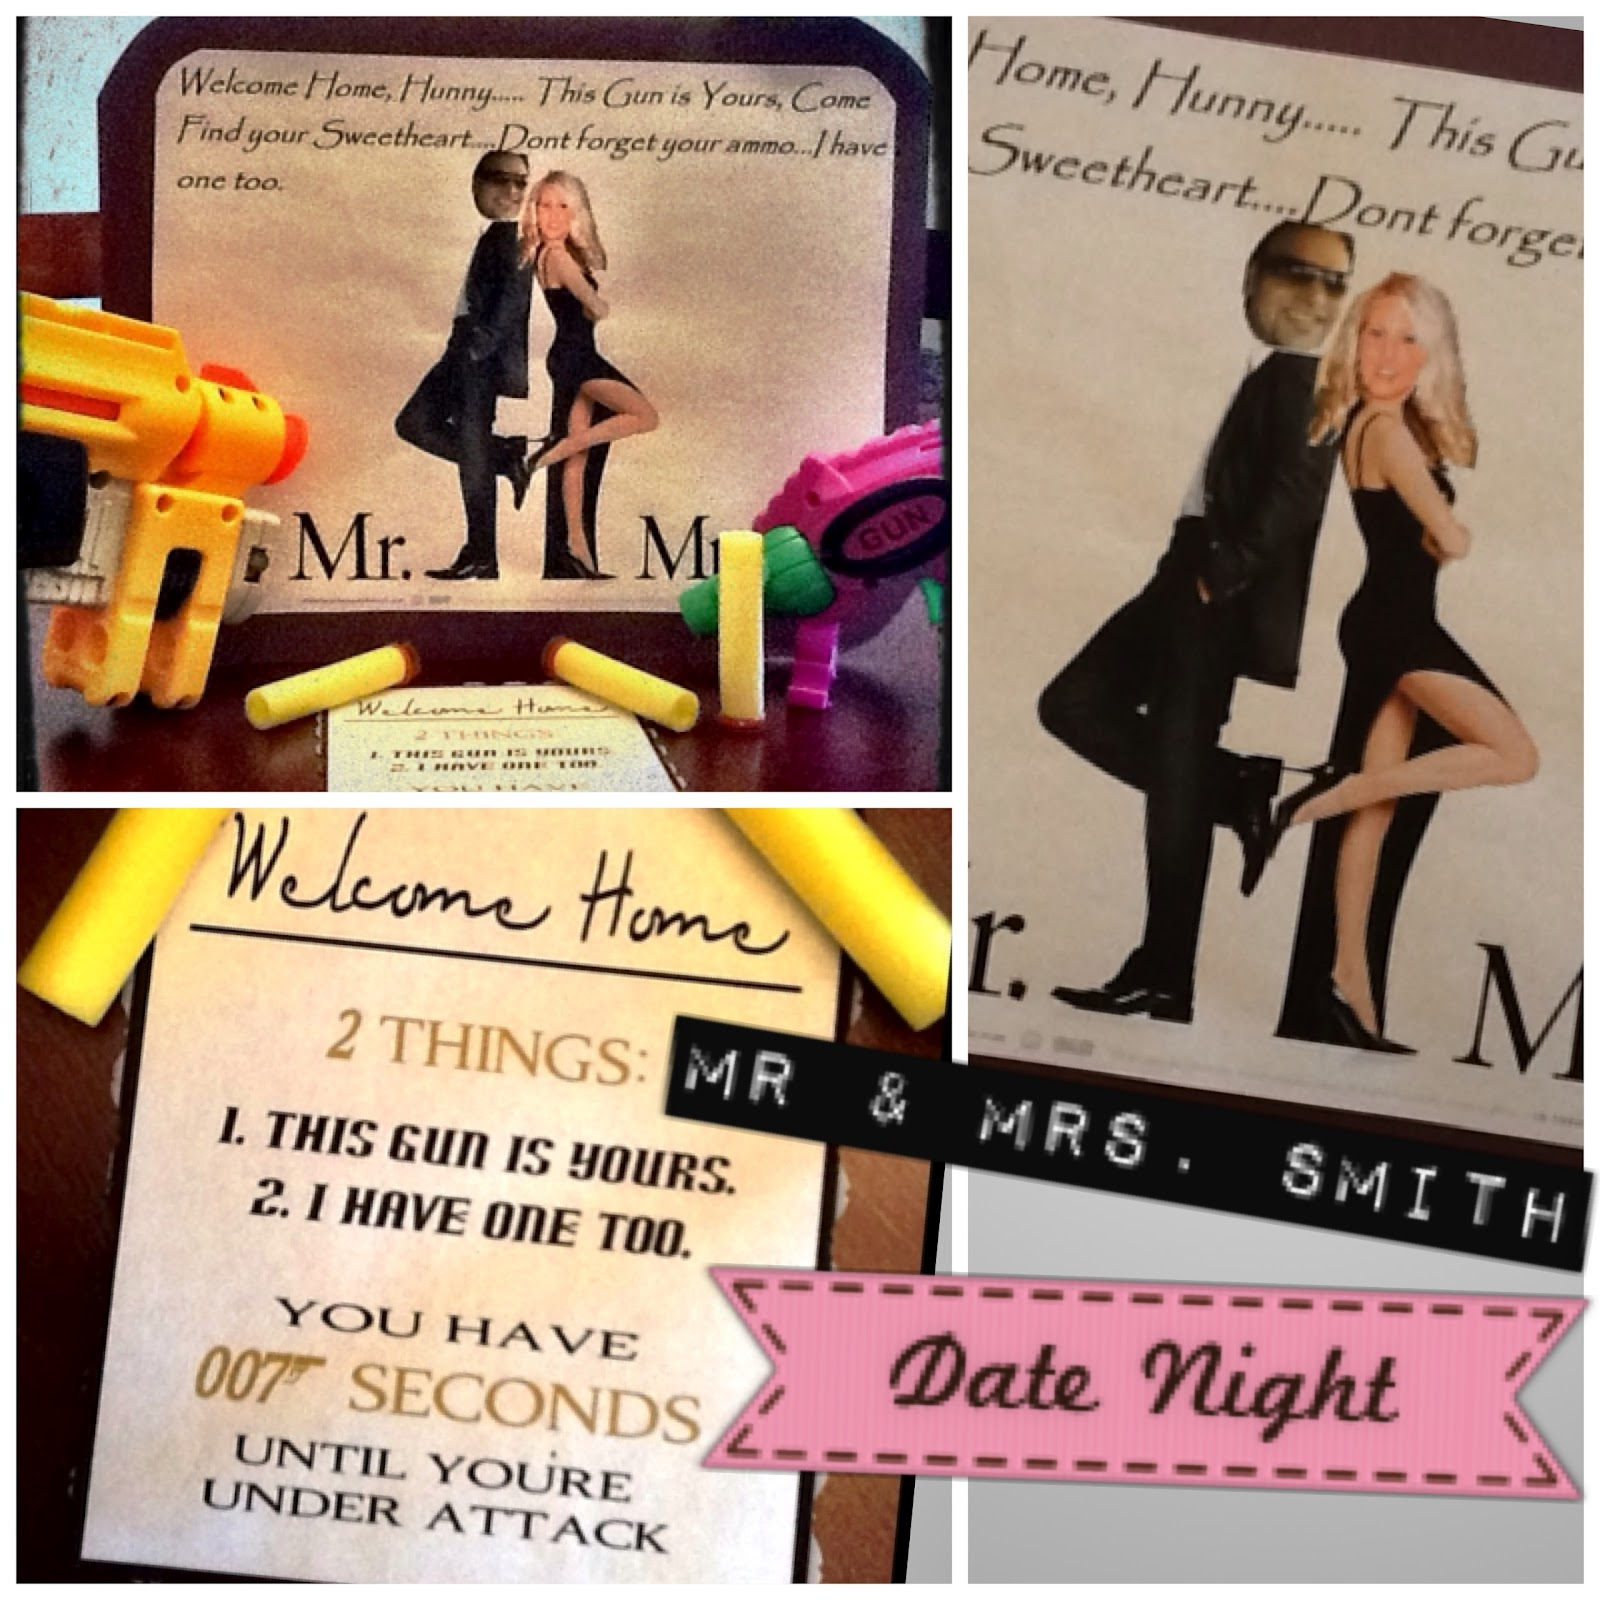 Sarah with an H: Mr. & Mrs. Smith; Date Night